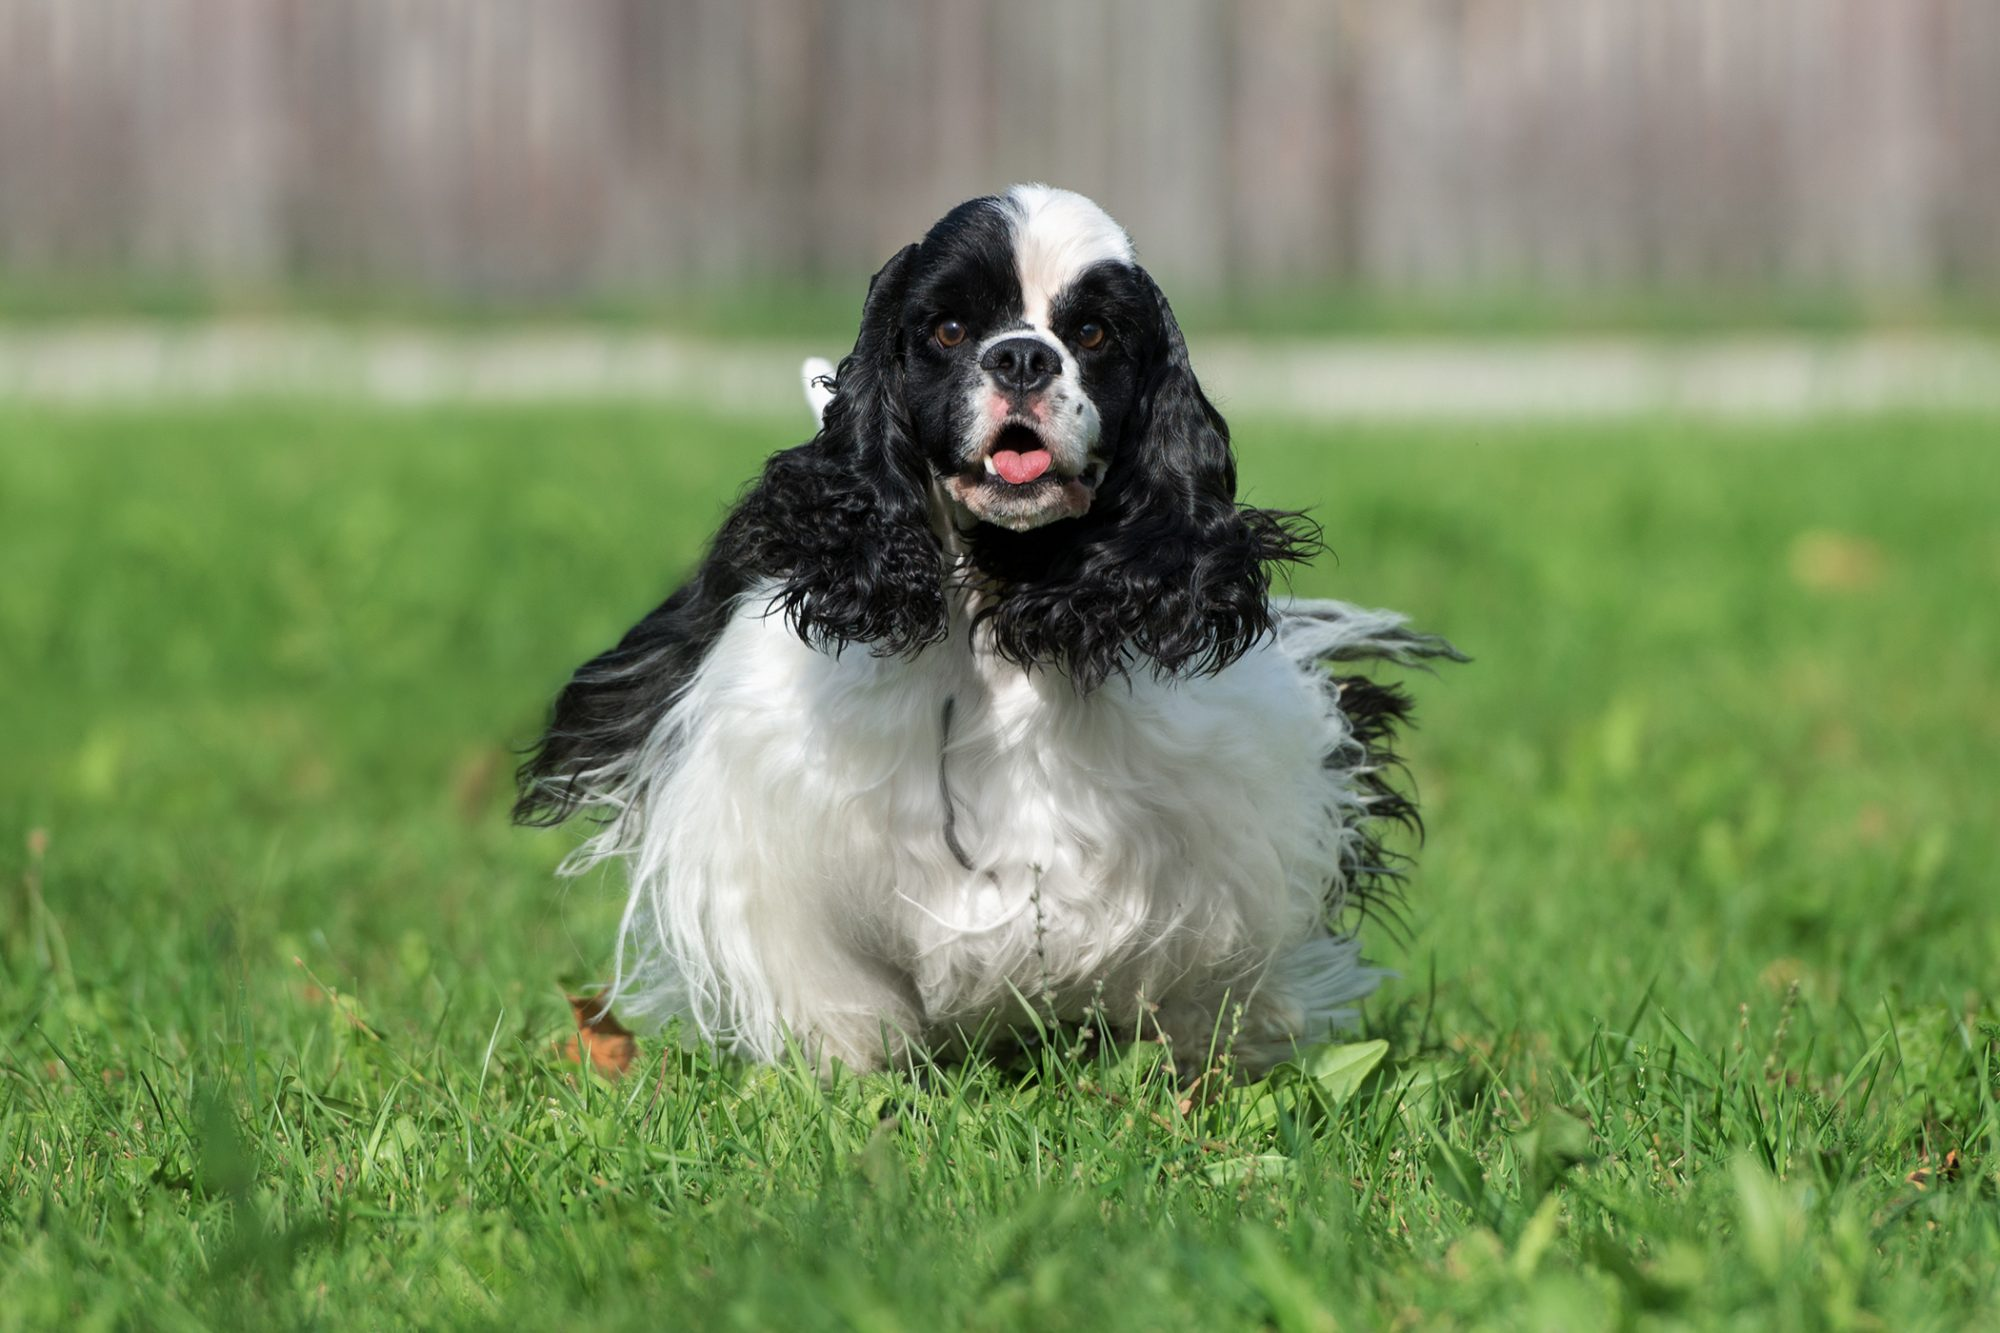 Black and white fluffy cocker spaniel stands in grass